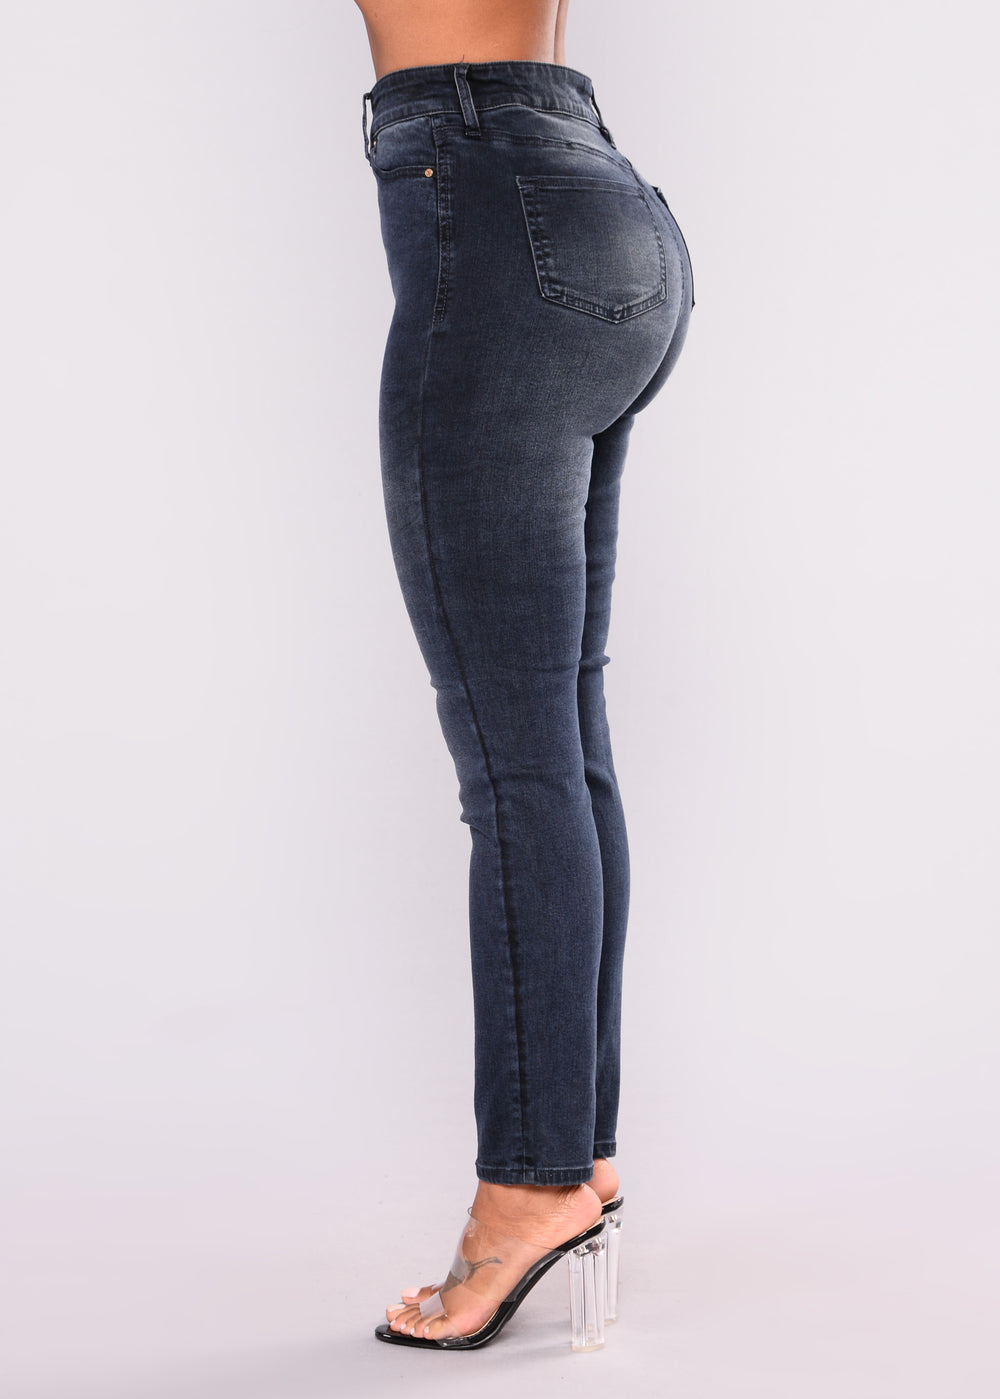 Be Without You Ankle Jeans